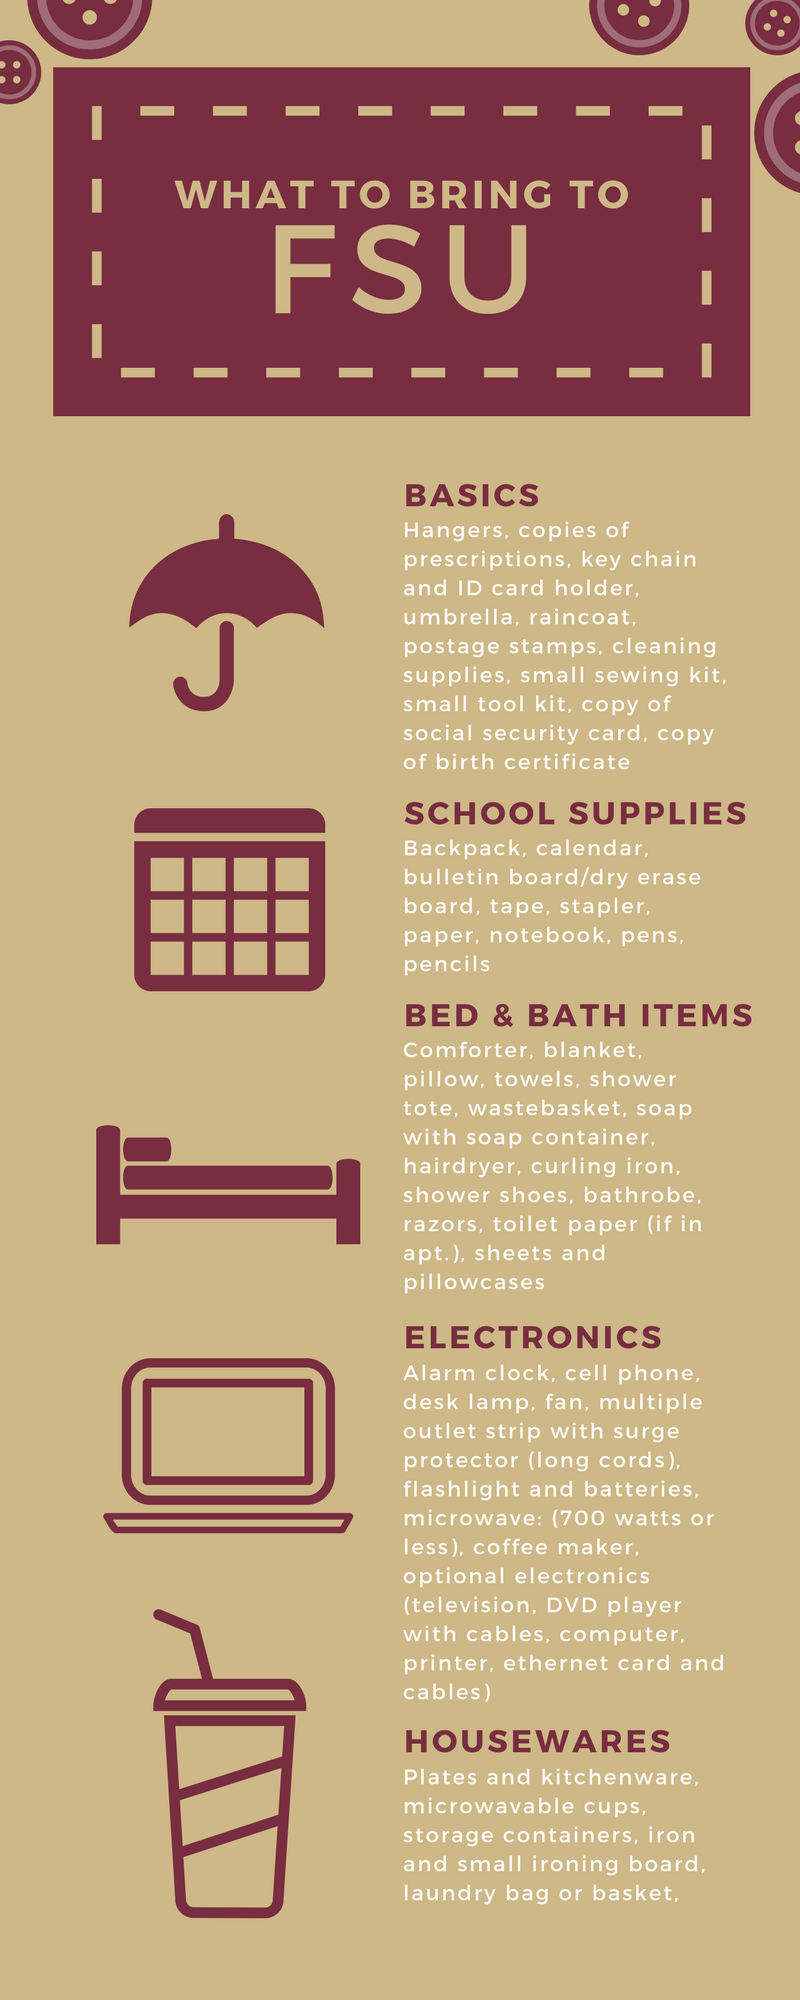 What to Bring to FSU Infographic